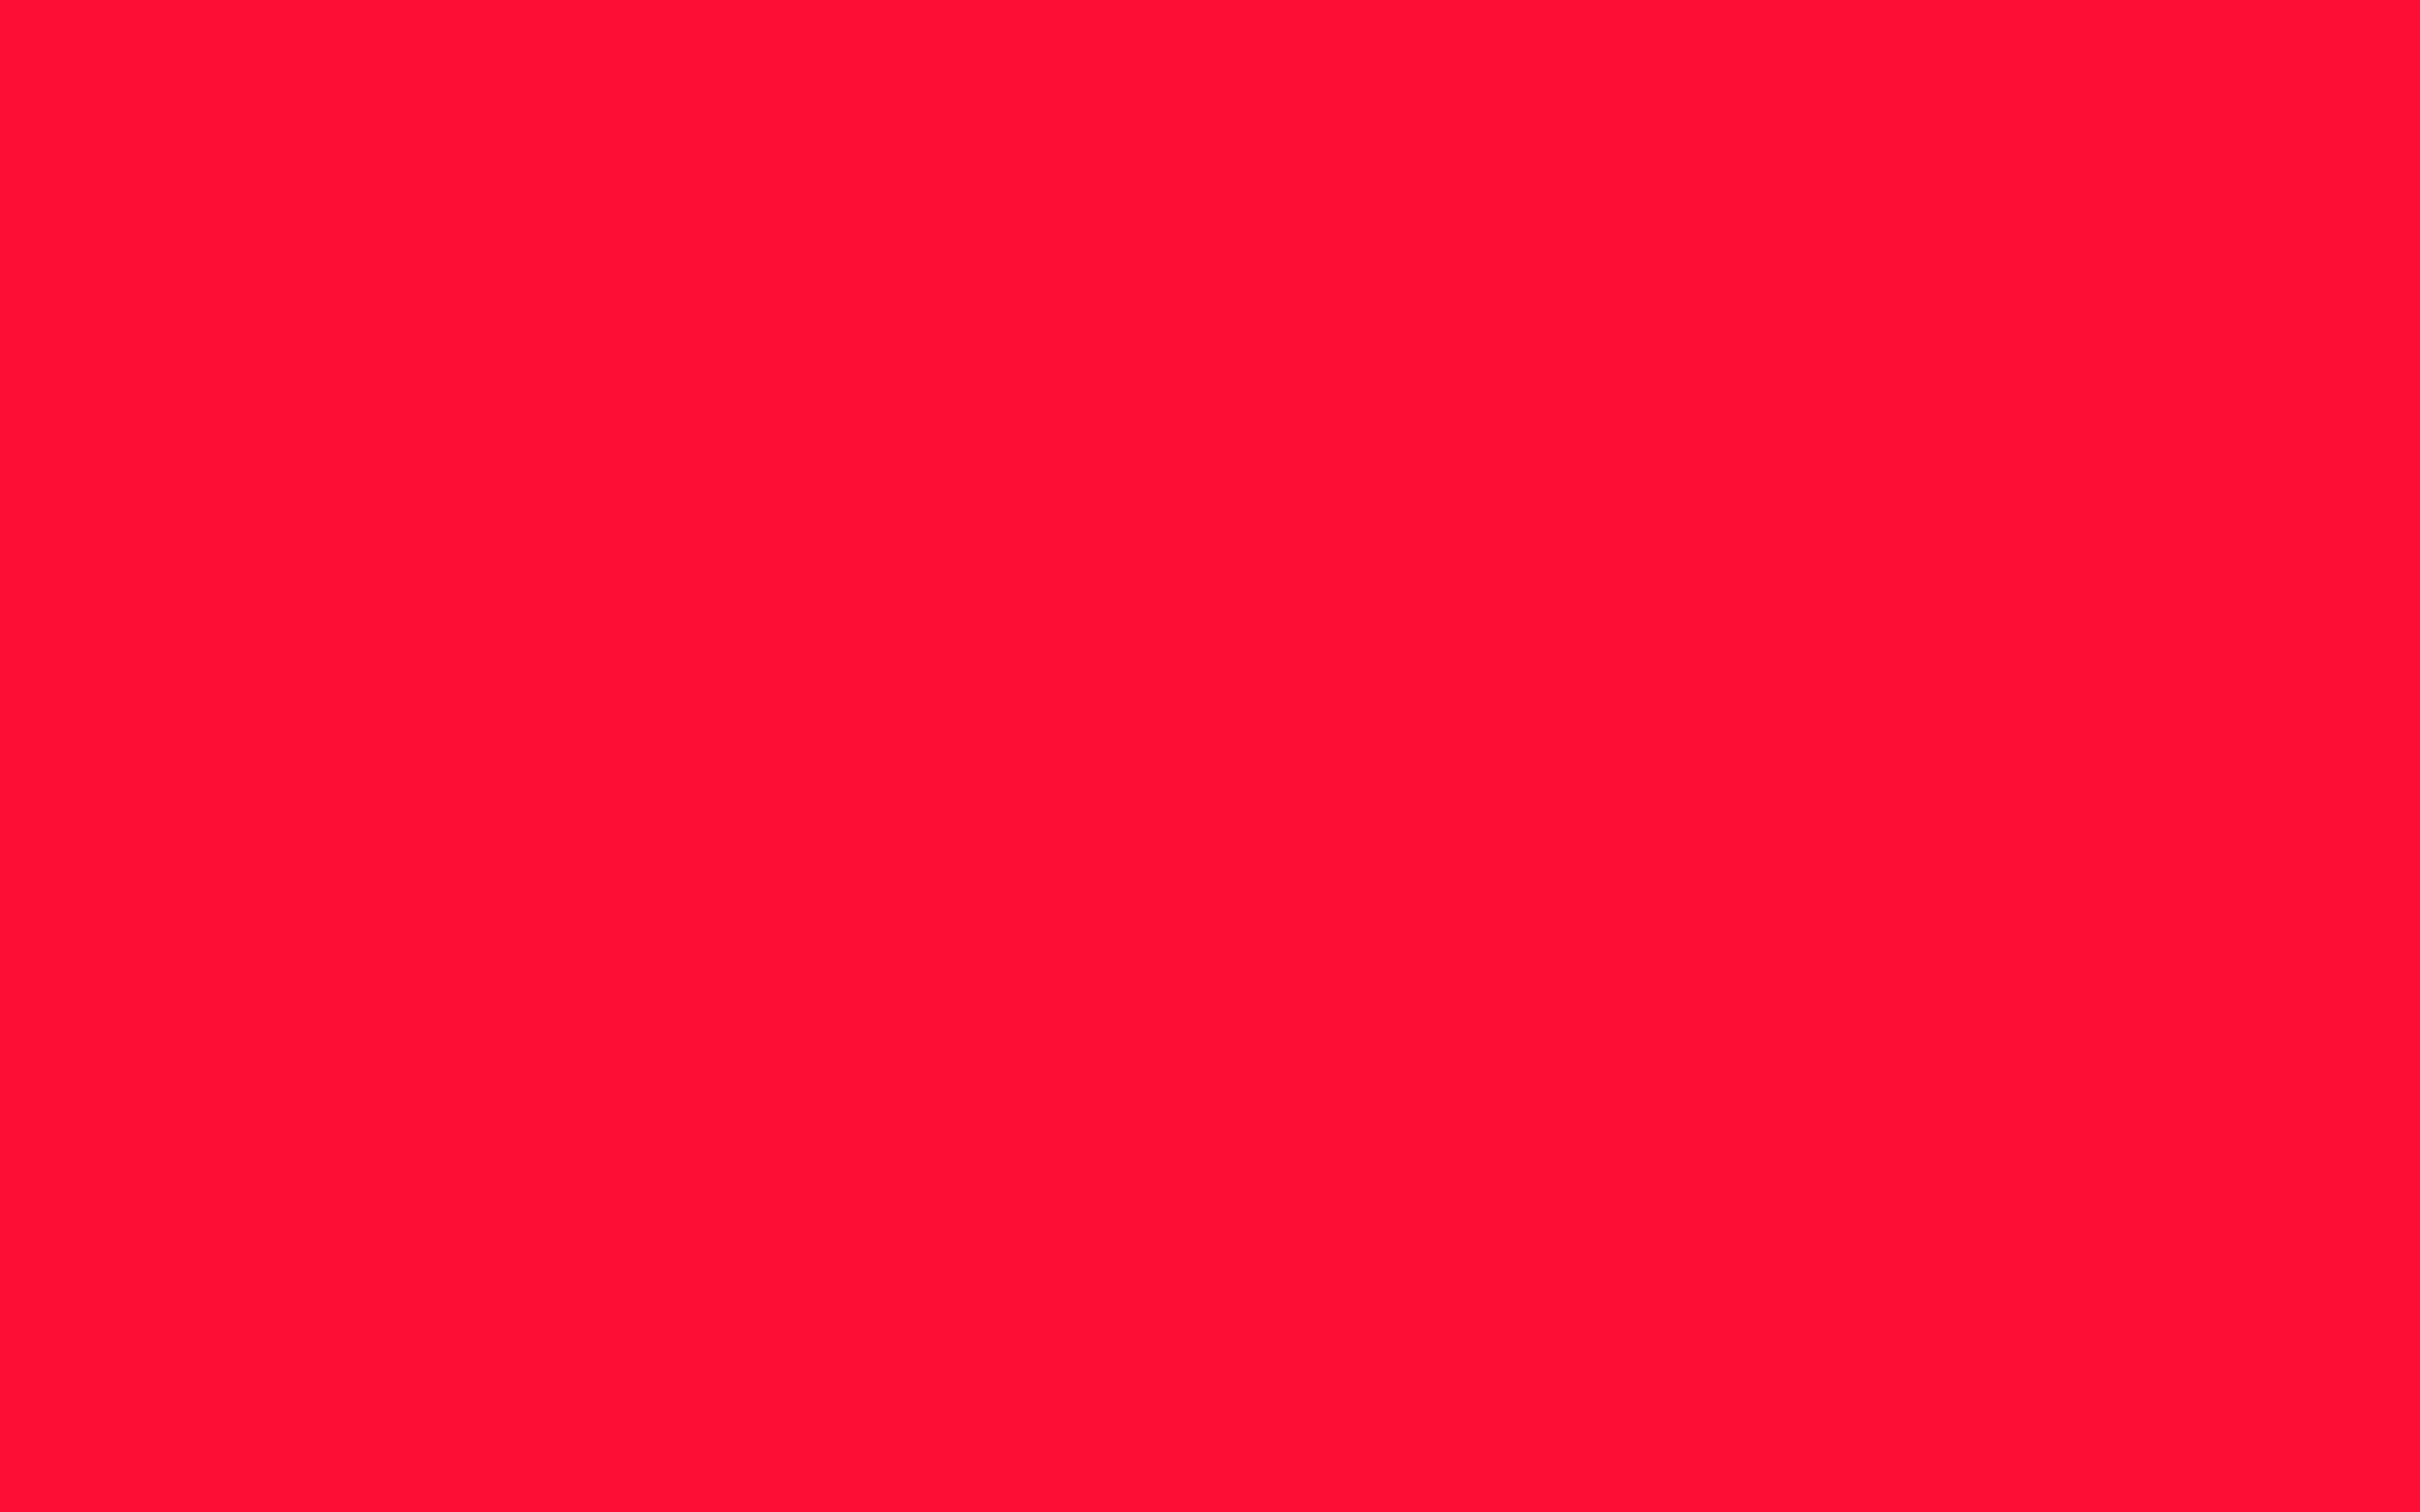 2880x1800 Tractor Red Solid Color Background